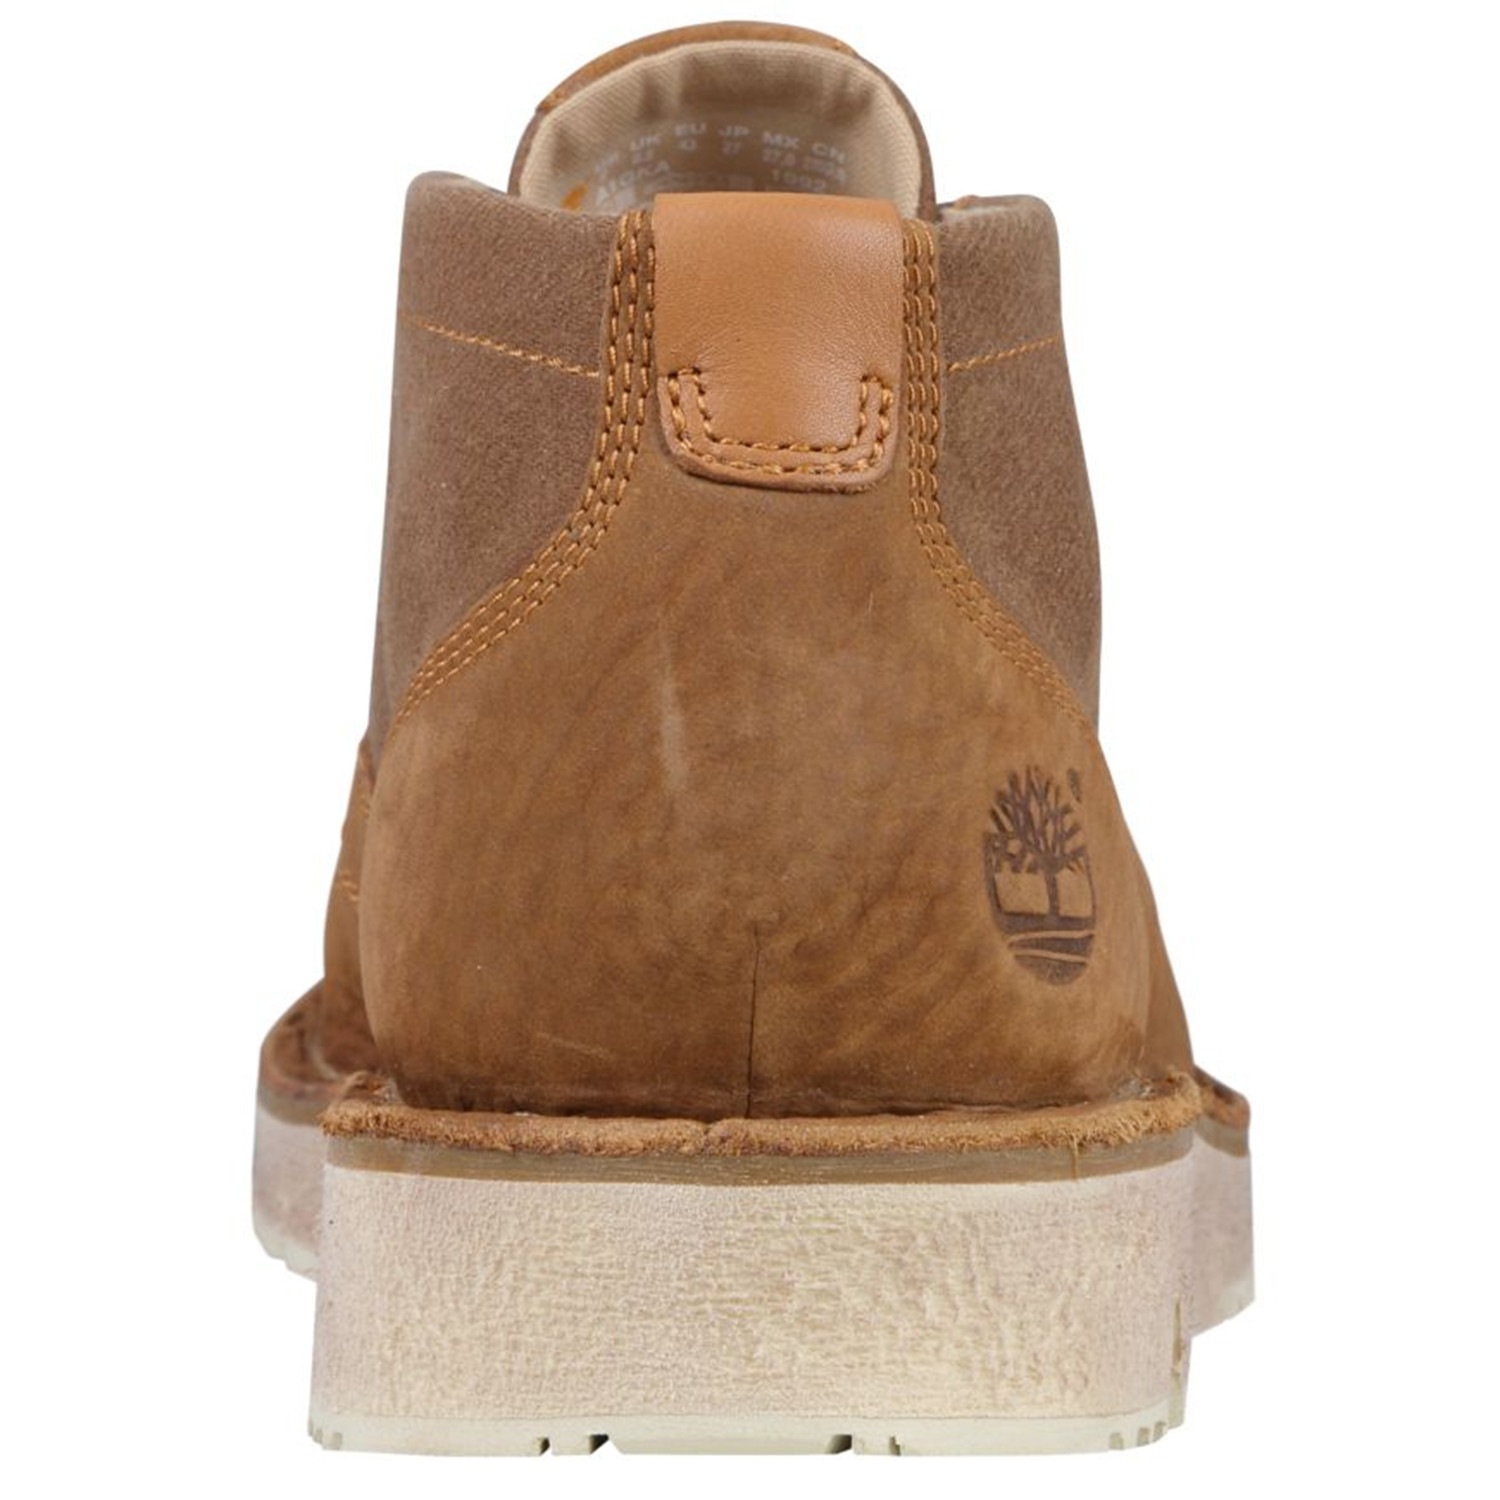 Westmore Chukka Chaussure Homme TIMBERLAND MARRON pas cher